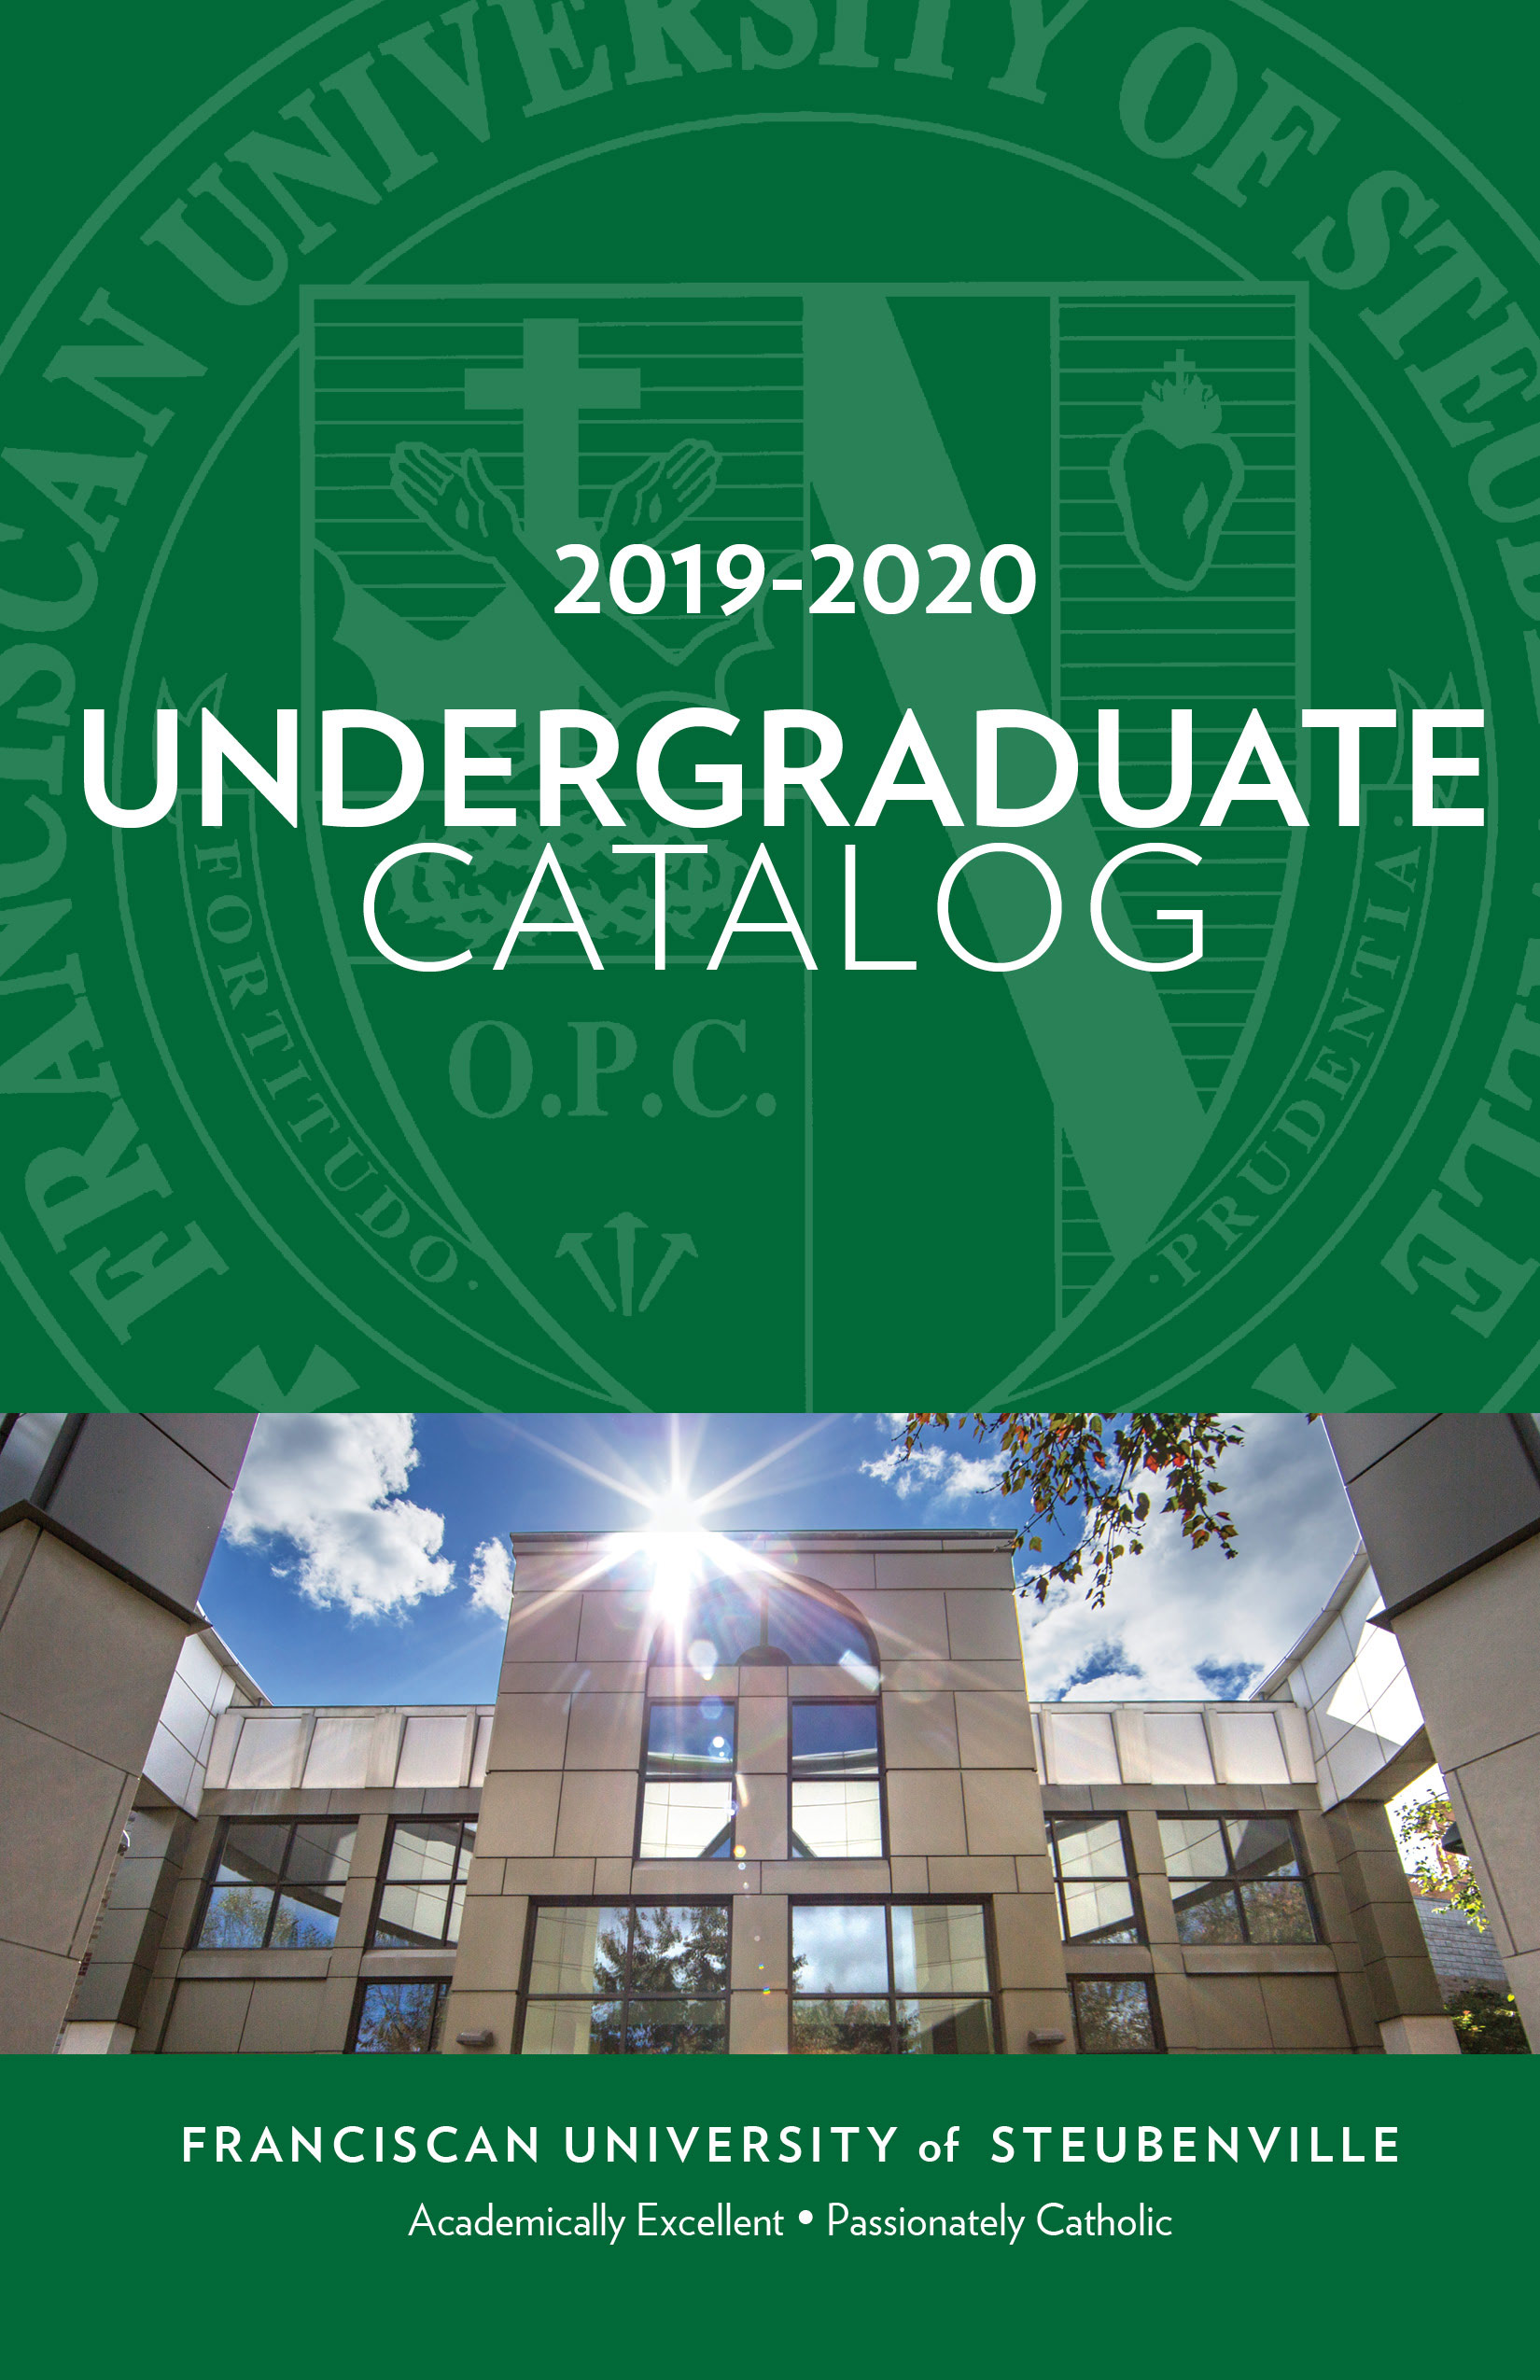 2019-2020 Undergraduate Catalog Cover